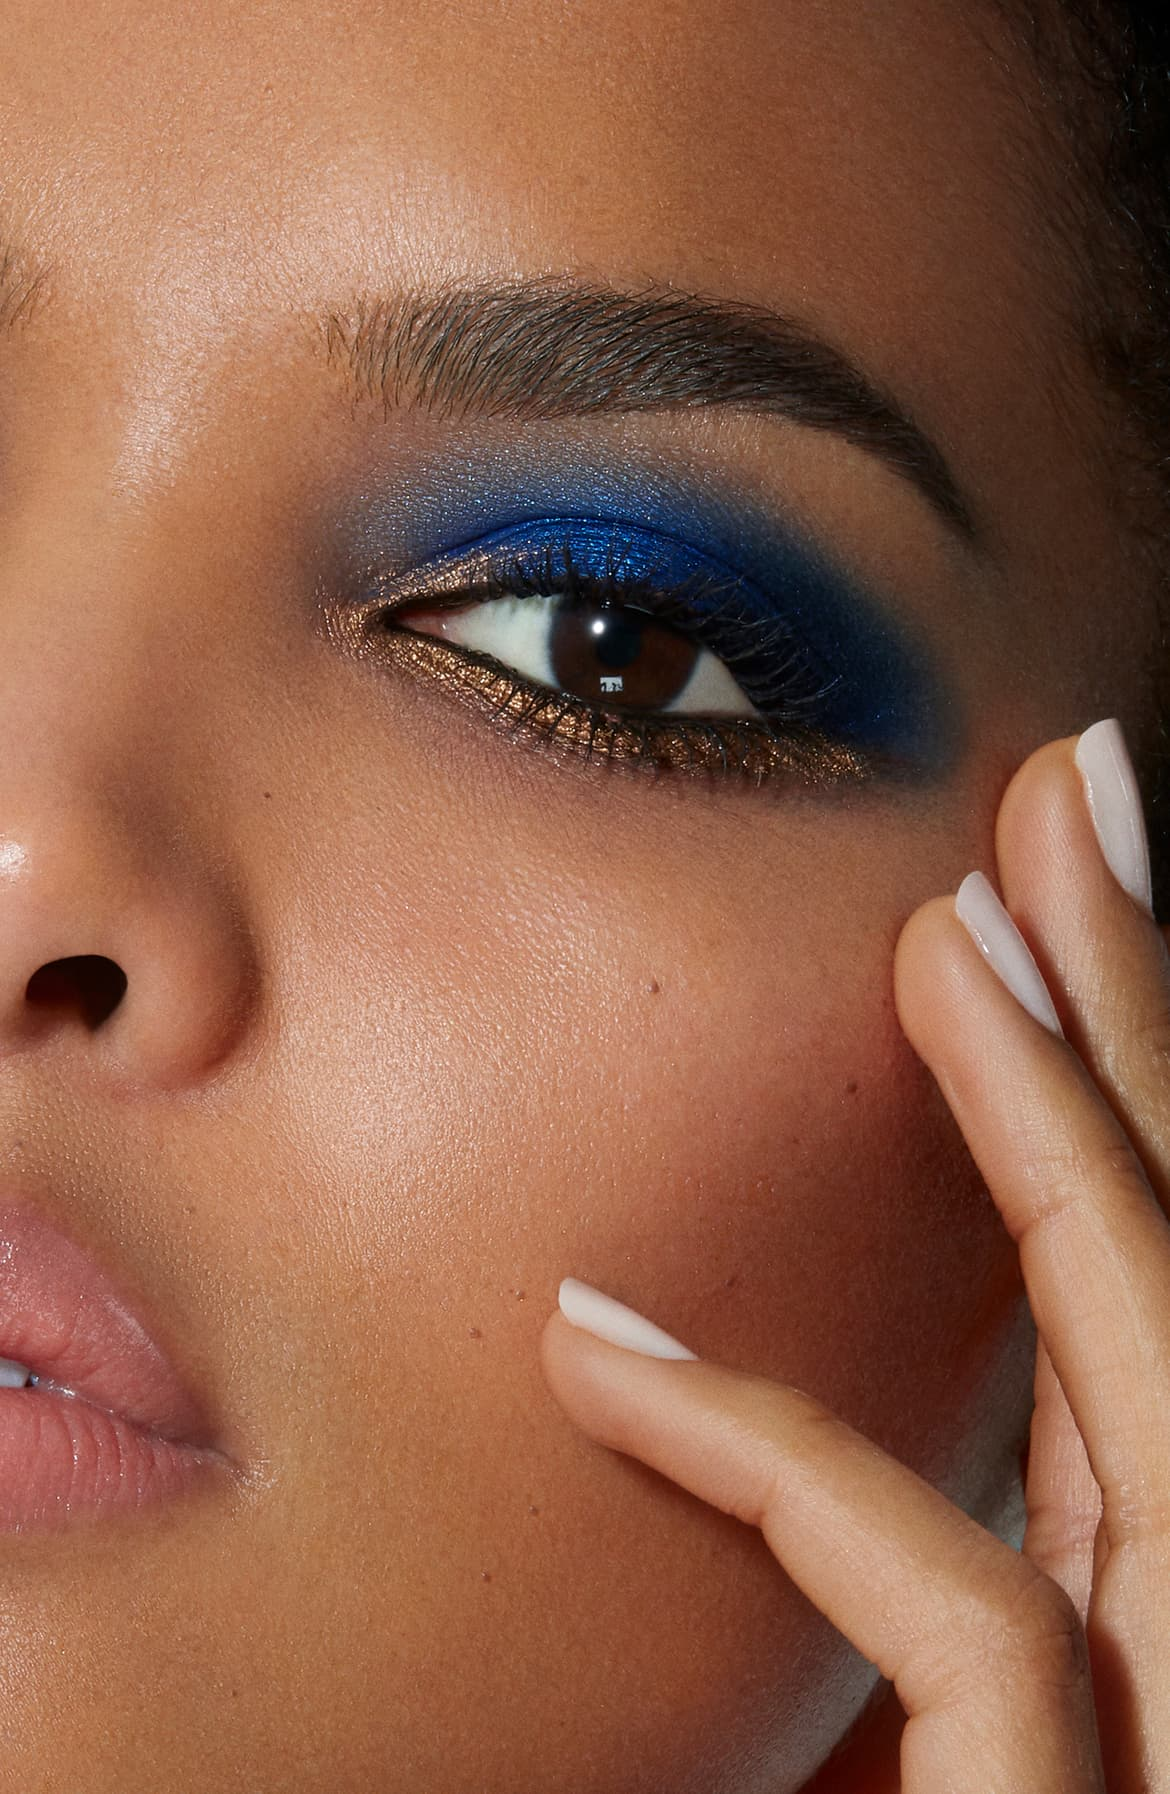 Oh heyyyy!{ }{ }The eye makeup of the '80s was bold, bright and blue. To try and master the makeup trend, wear some blue shadow or liner. Don't go overboard, less is more here. (Image: Nordstrom){ }